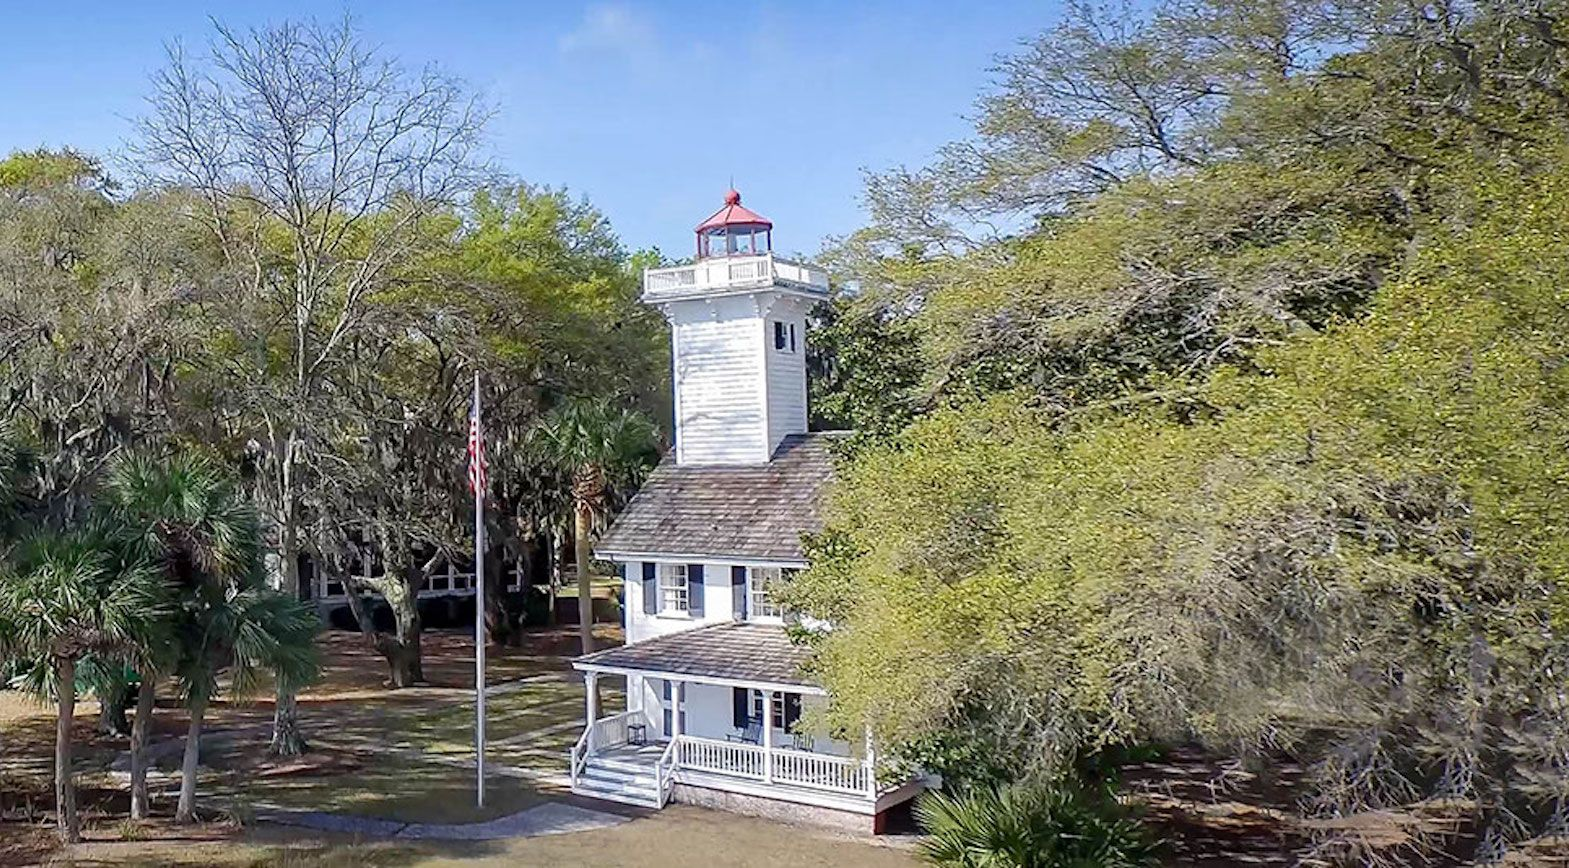 Haig Point Lighthouse in South Caroline, US